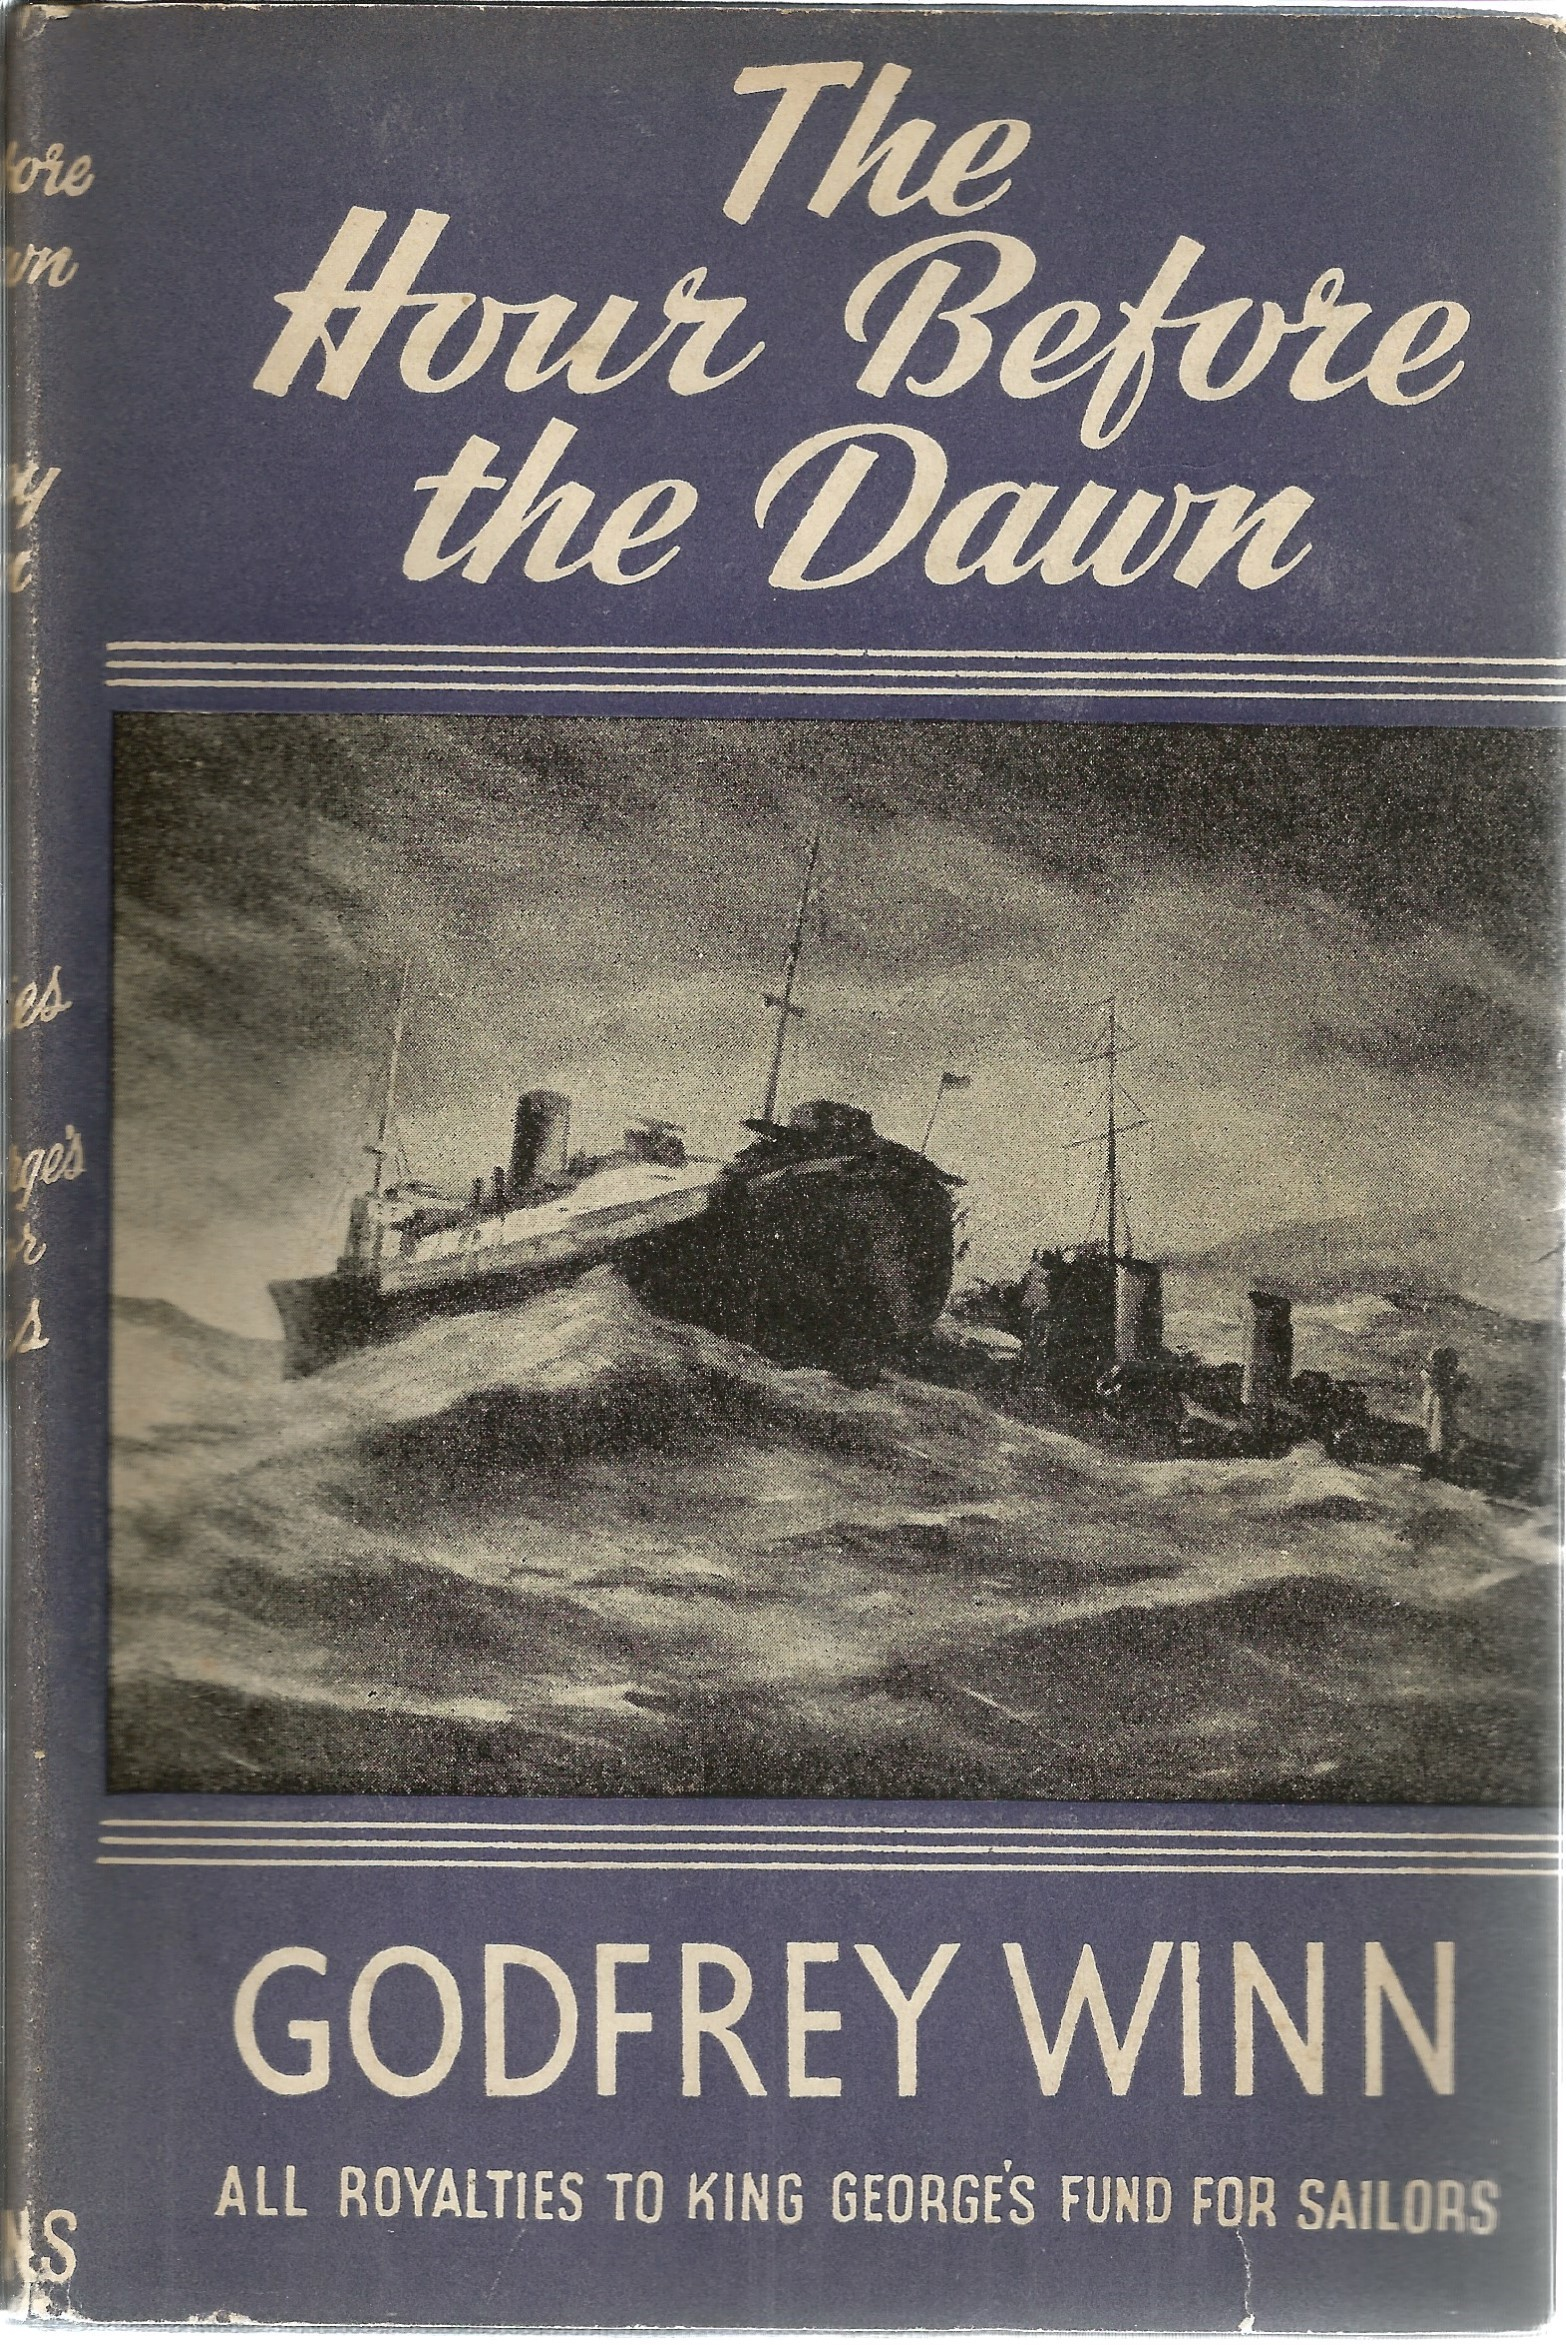 Godfrey Winn. The Hour Before The Dawn. A WW2 Hardback book, showing signs of age. Signed and